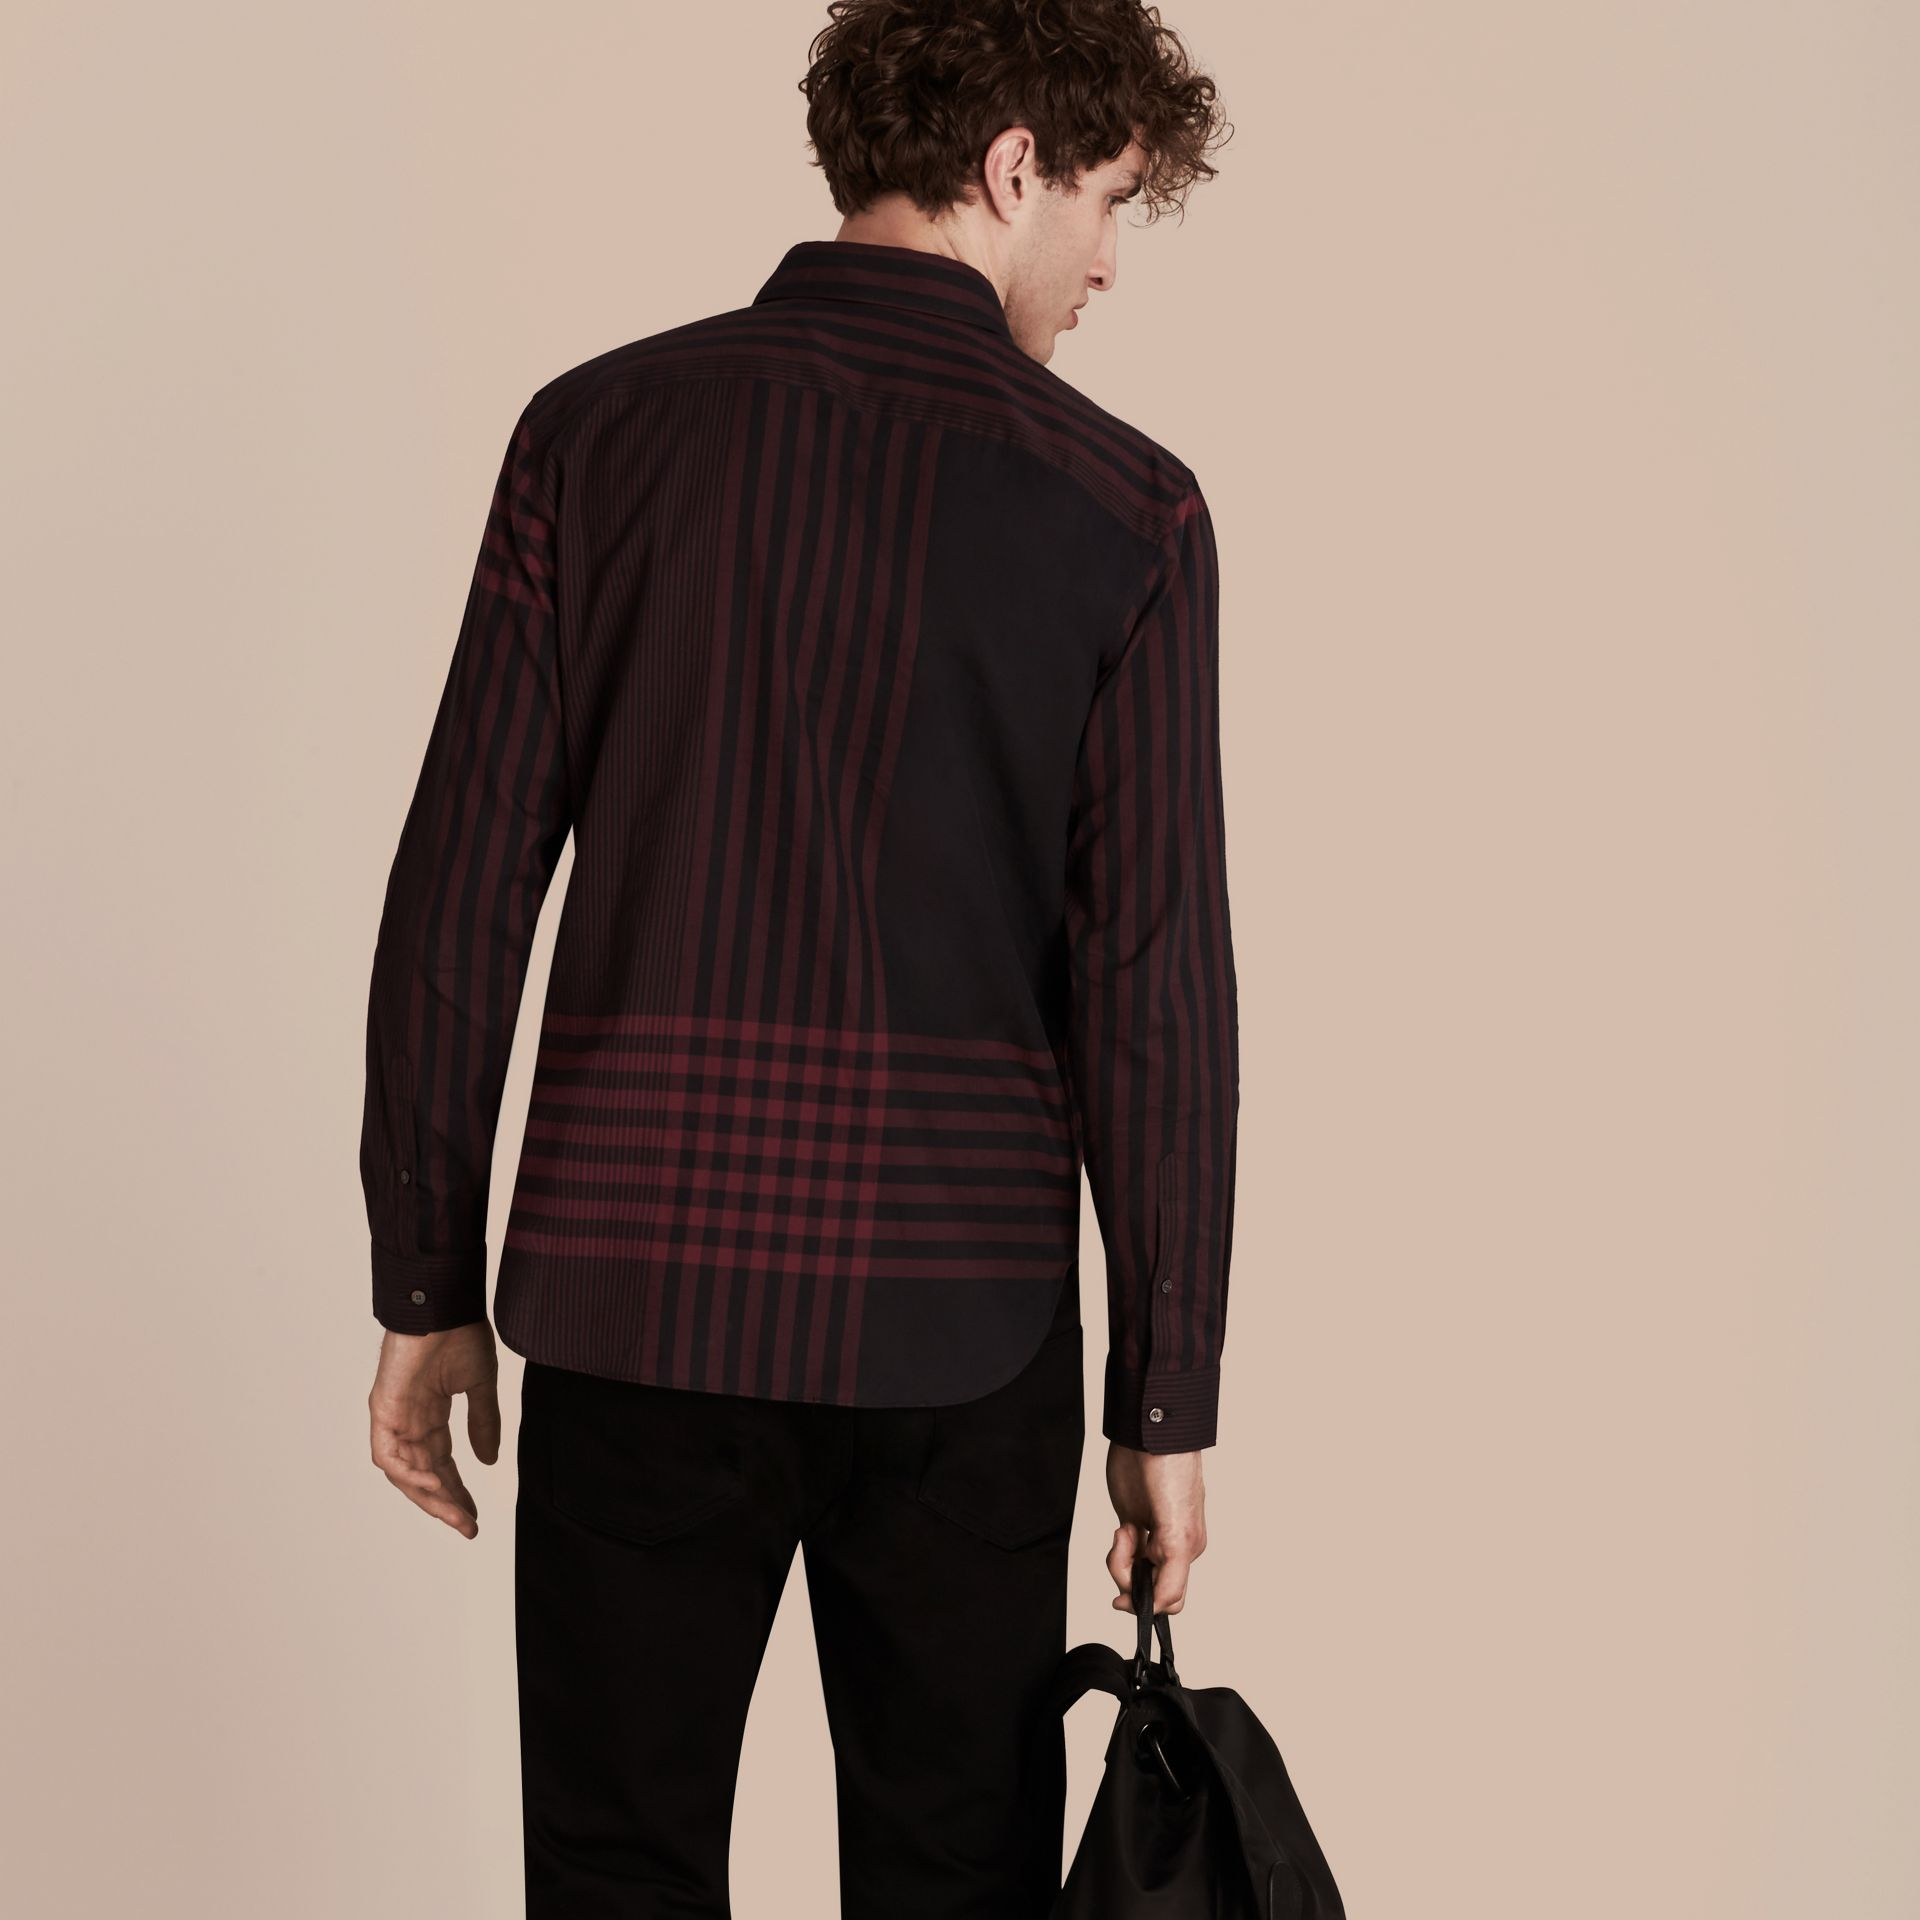 Burgundy red Graphic Check Cotton Shirt Burgundy Red - gallery image 3